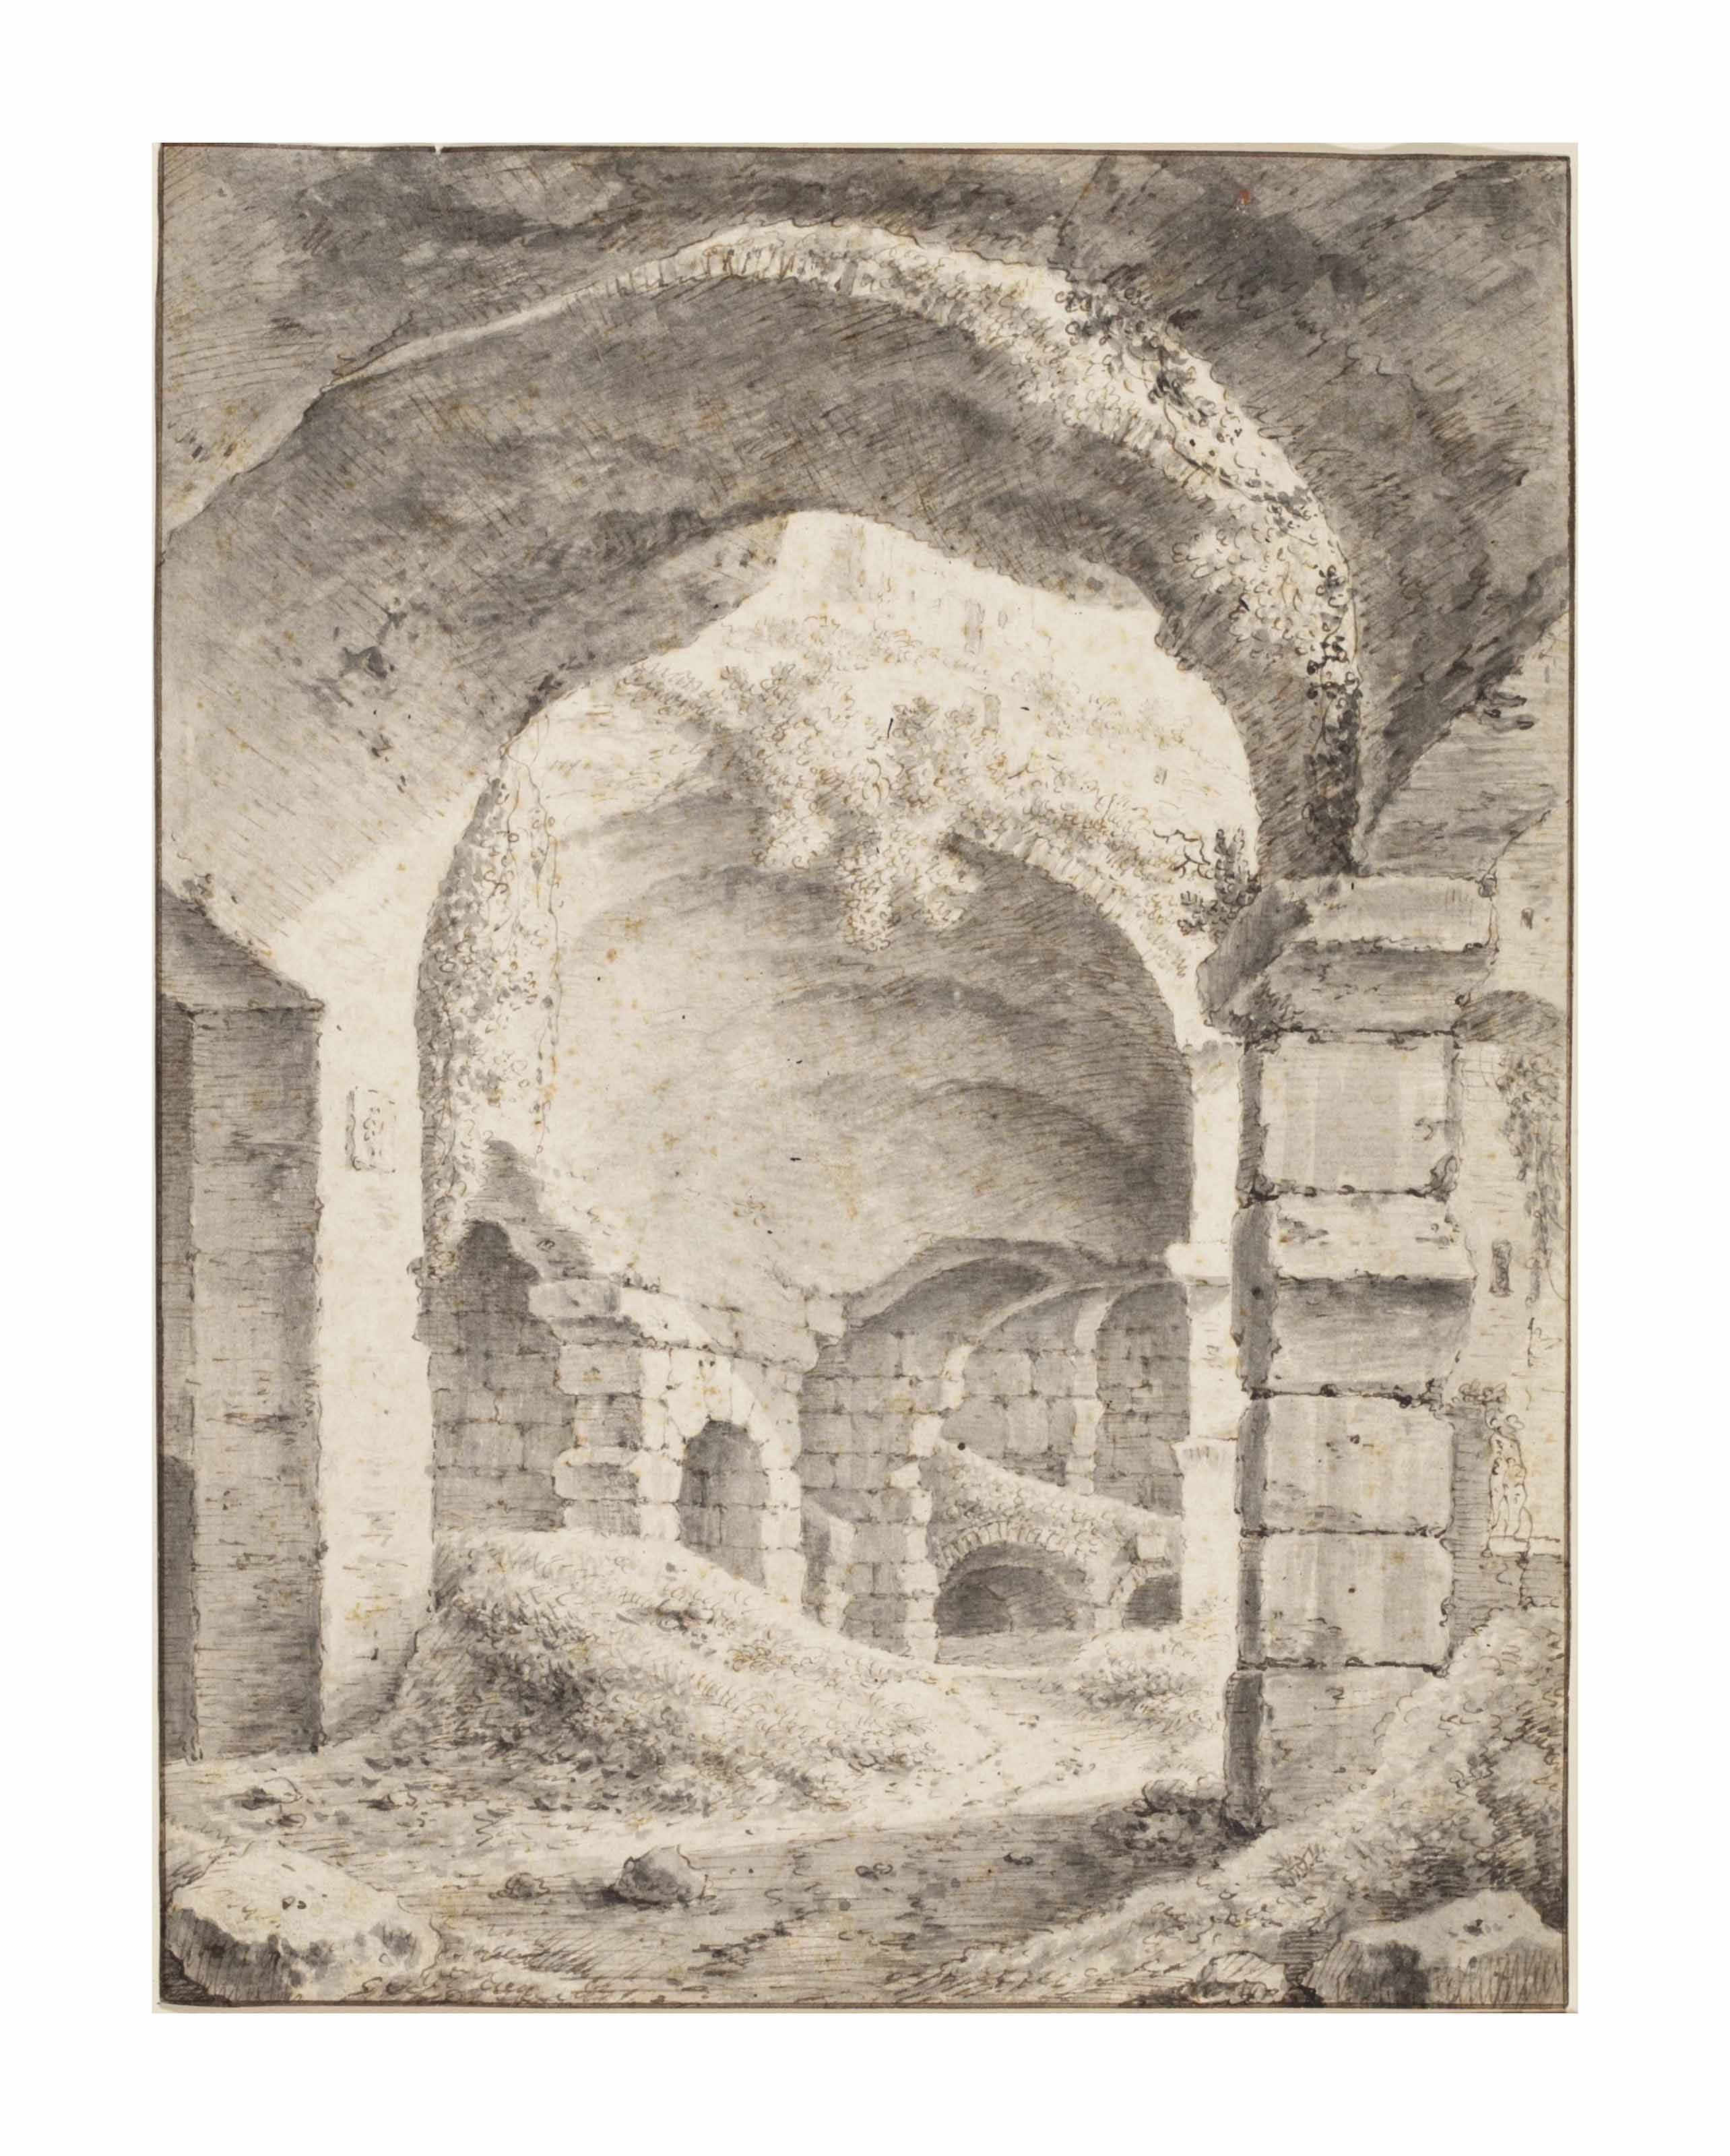 View of Roman ruins (possibly the Colosseum)